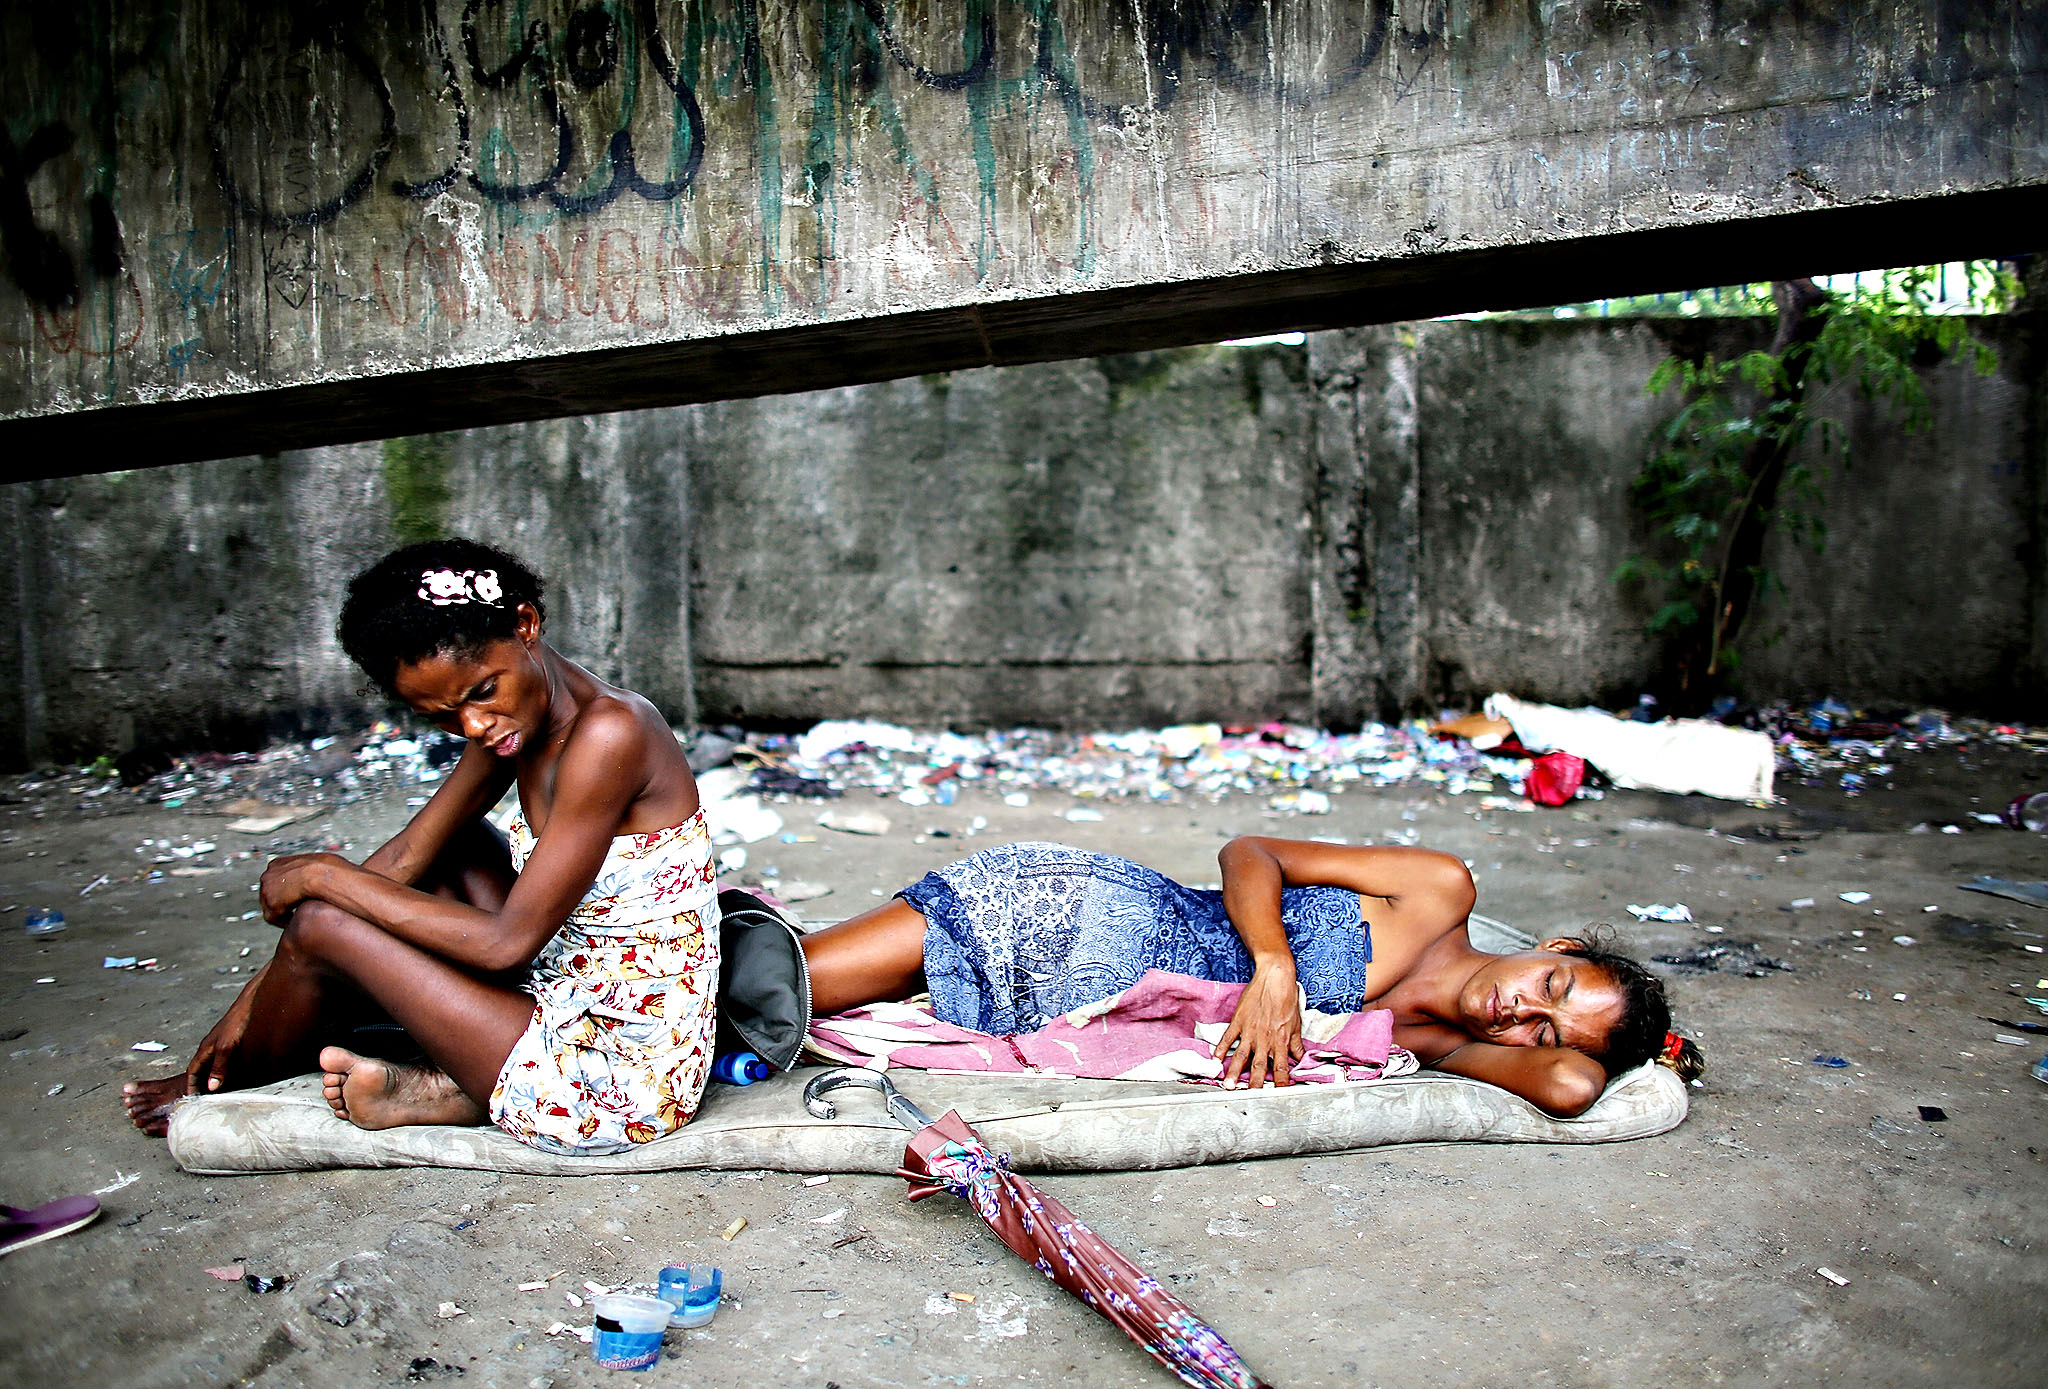 Brazil Struggles With Crack Epidemic...RIO DE JANEIRO, BRAZIL - DECEMBER 10:  Drug users gather beneath an overpass in an area known as 'Cracolandia', or Crackland, in the Antares shantytown on December 10, 2013 in Rio de Janeiro, Brazil. According to the Economist, recent studies have shown Brazil to be the world's largest crack market, with 1-1.2 million users. The use of crack has   rapidly expanded and become a nationwide epidemic largely due to Brazil's proximity to cocaine-producing countries and an increase in purchasing power within the country.  (Photo by Mario Tama/Getty Images)